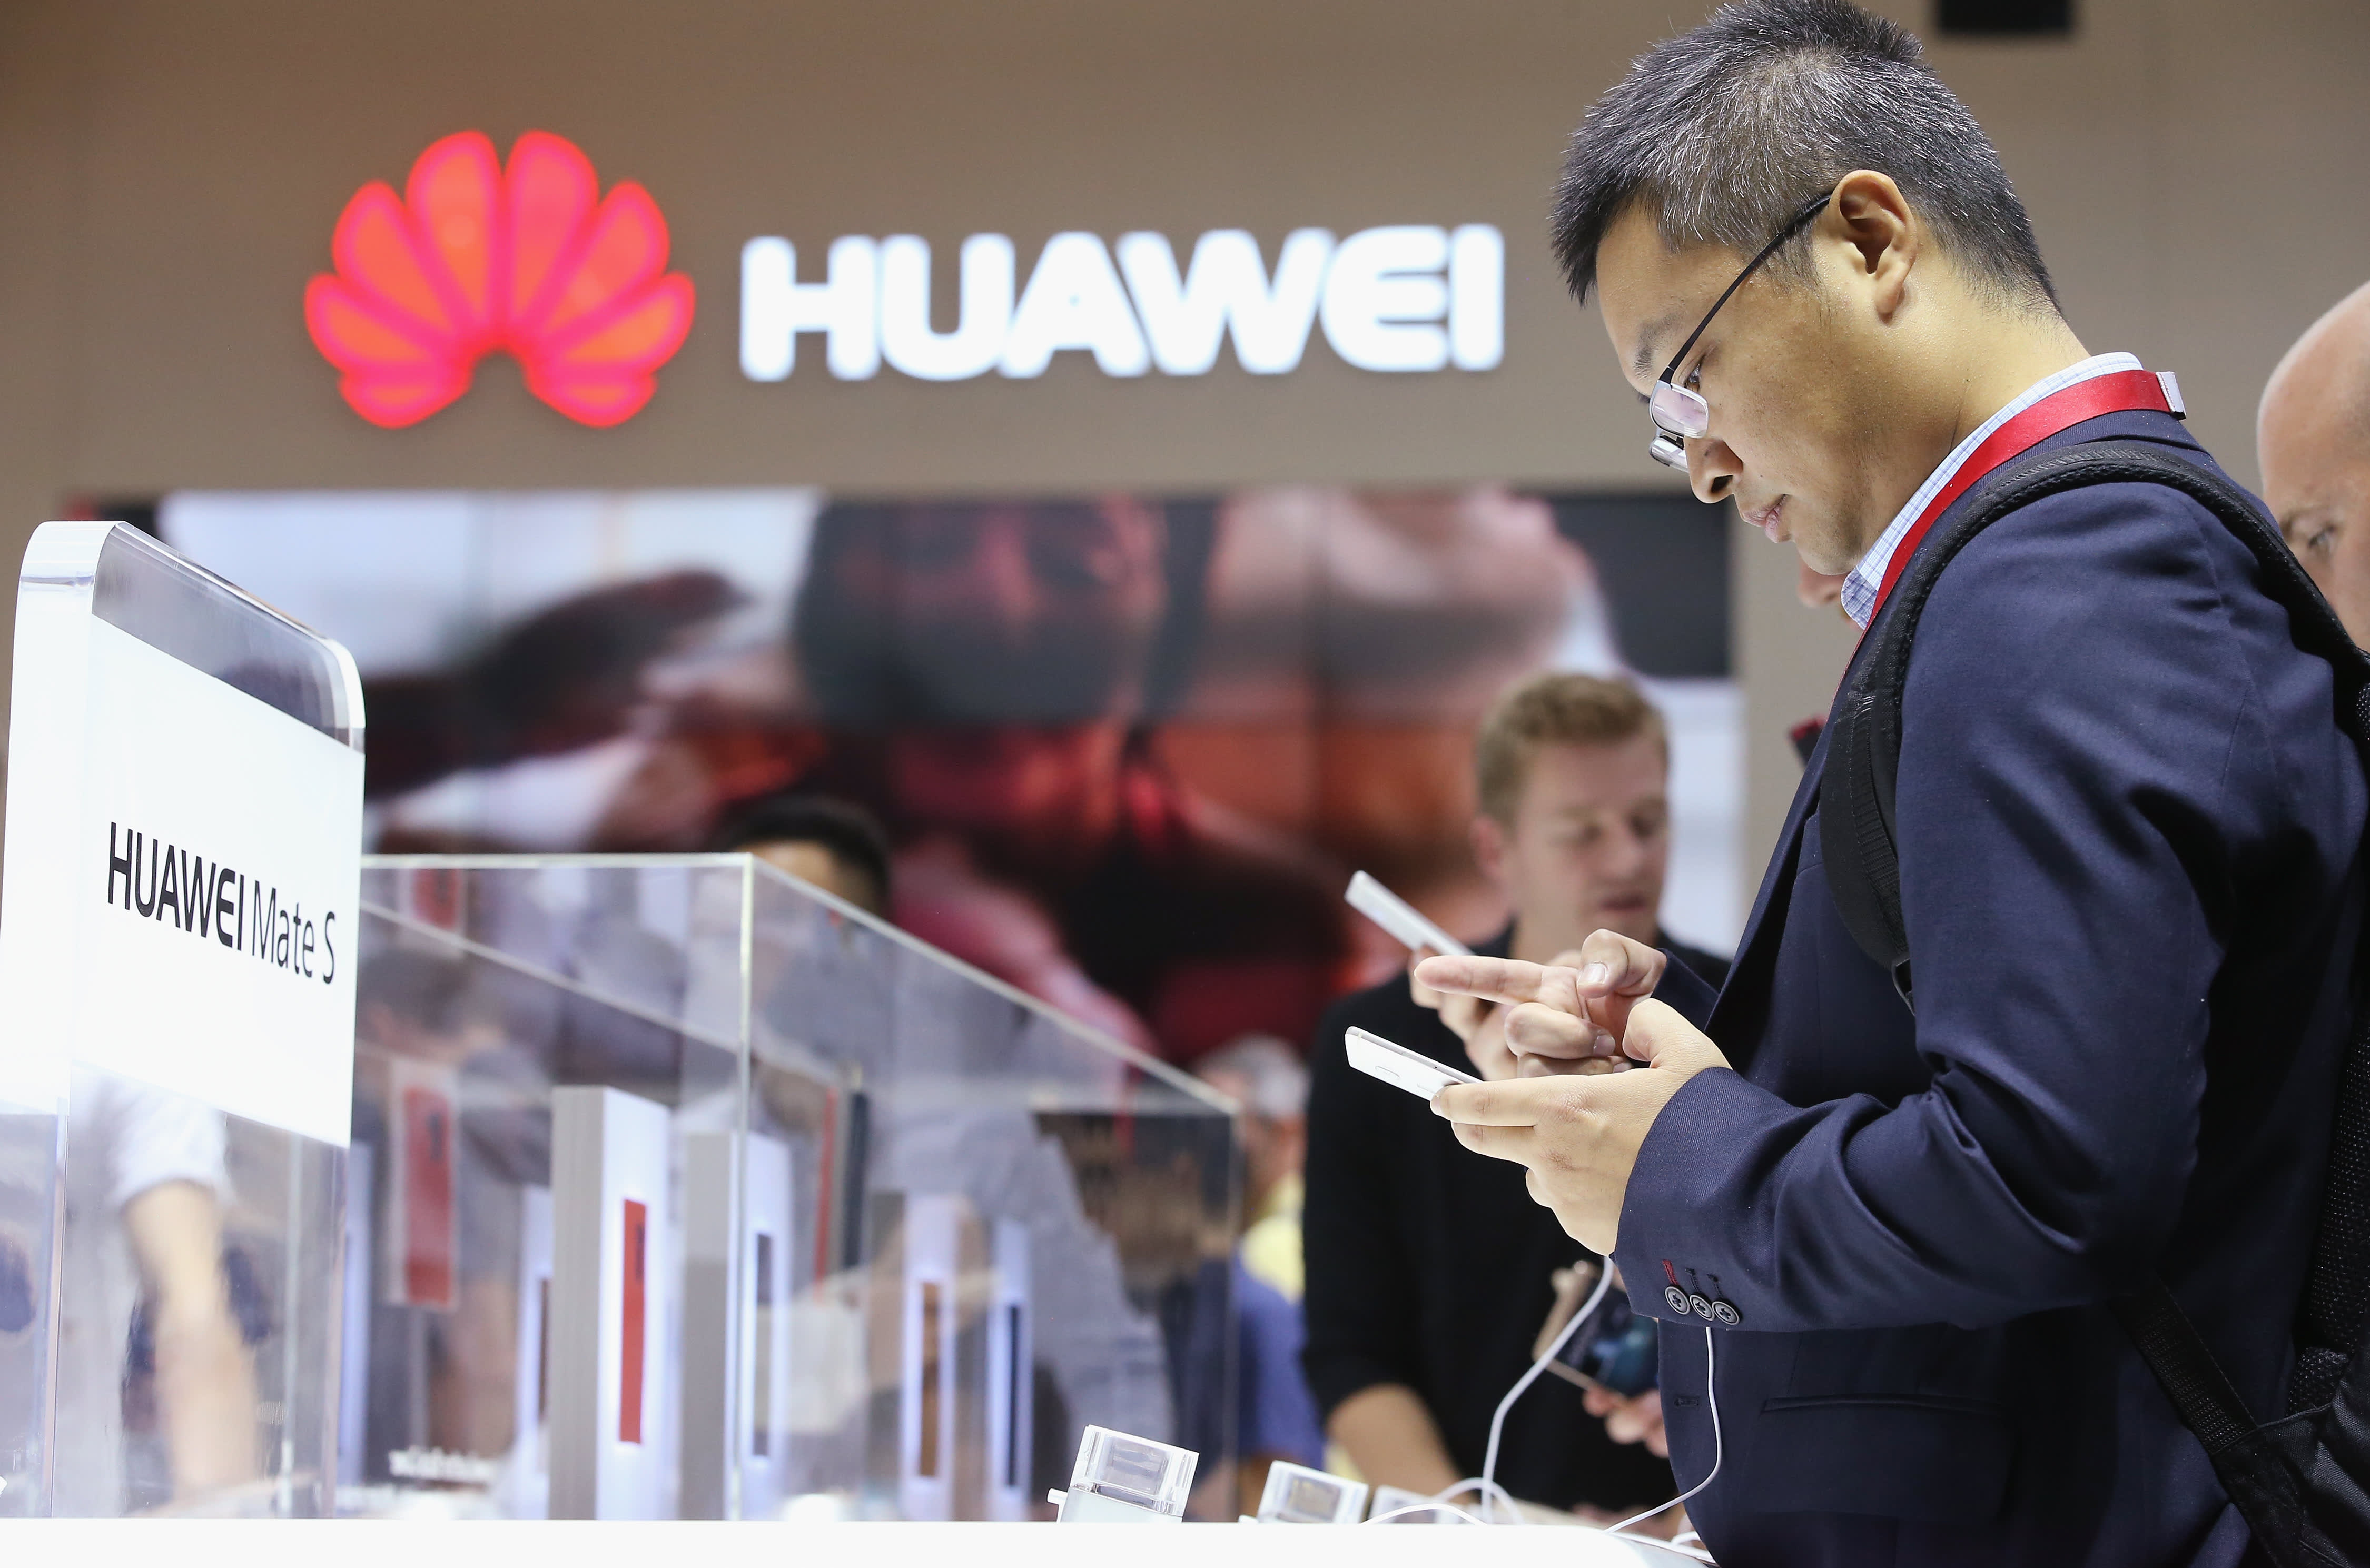 Google reverses decision to cut ties with Huawei after US eases trade restrictions